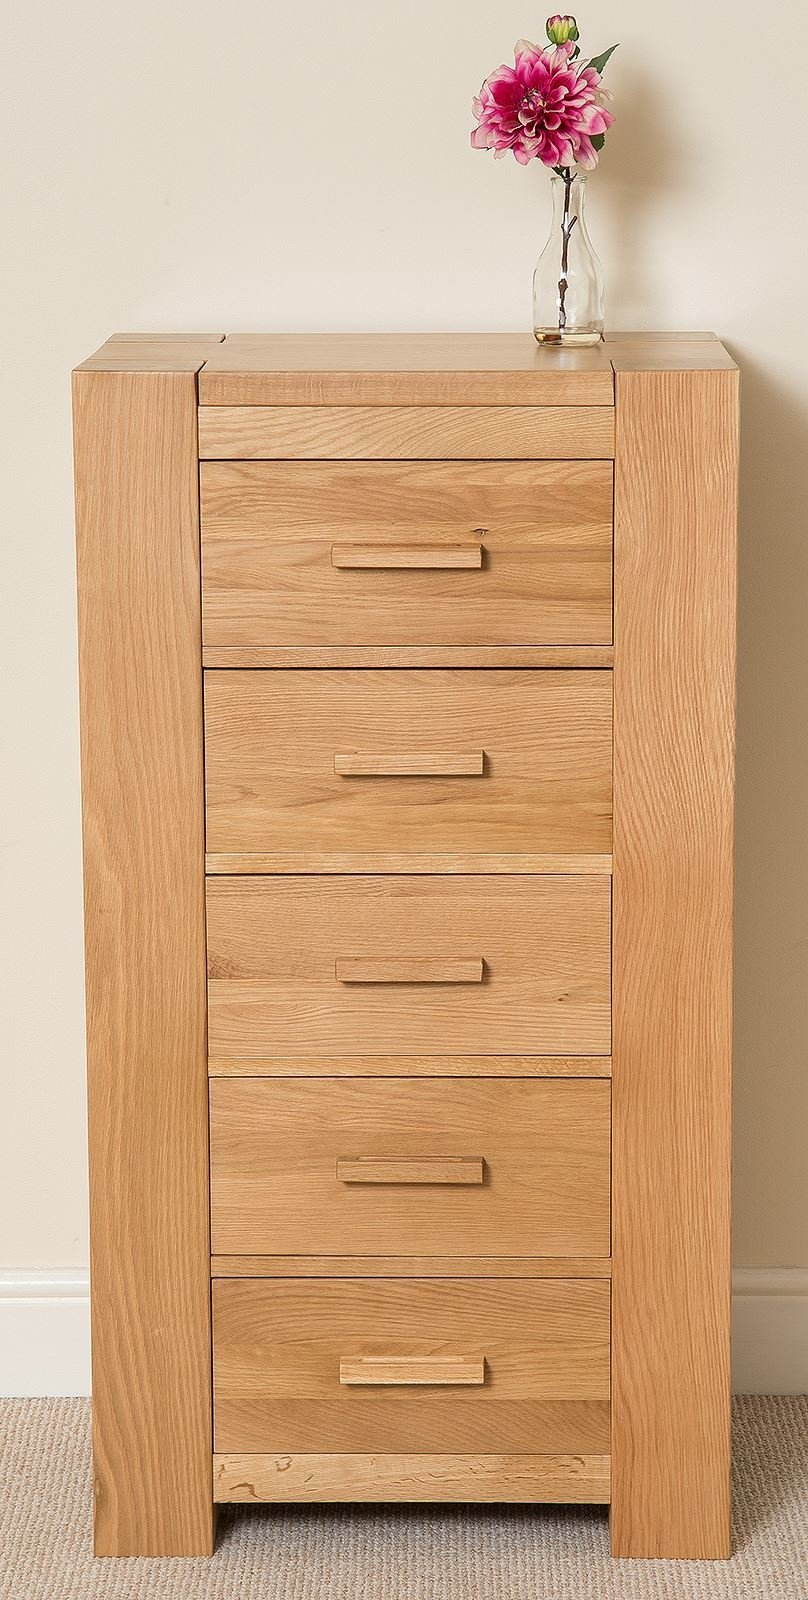 Best Kuba Chunky Solid Oak Wood 5 Drawer Tallboy Chest Of Drawers Bedroom Furniture Ebay With Pictures